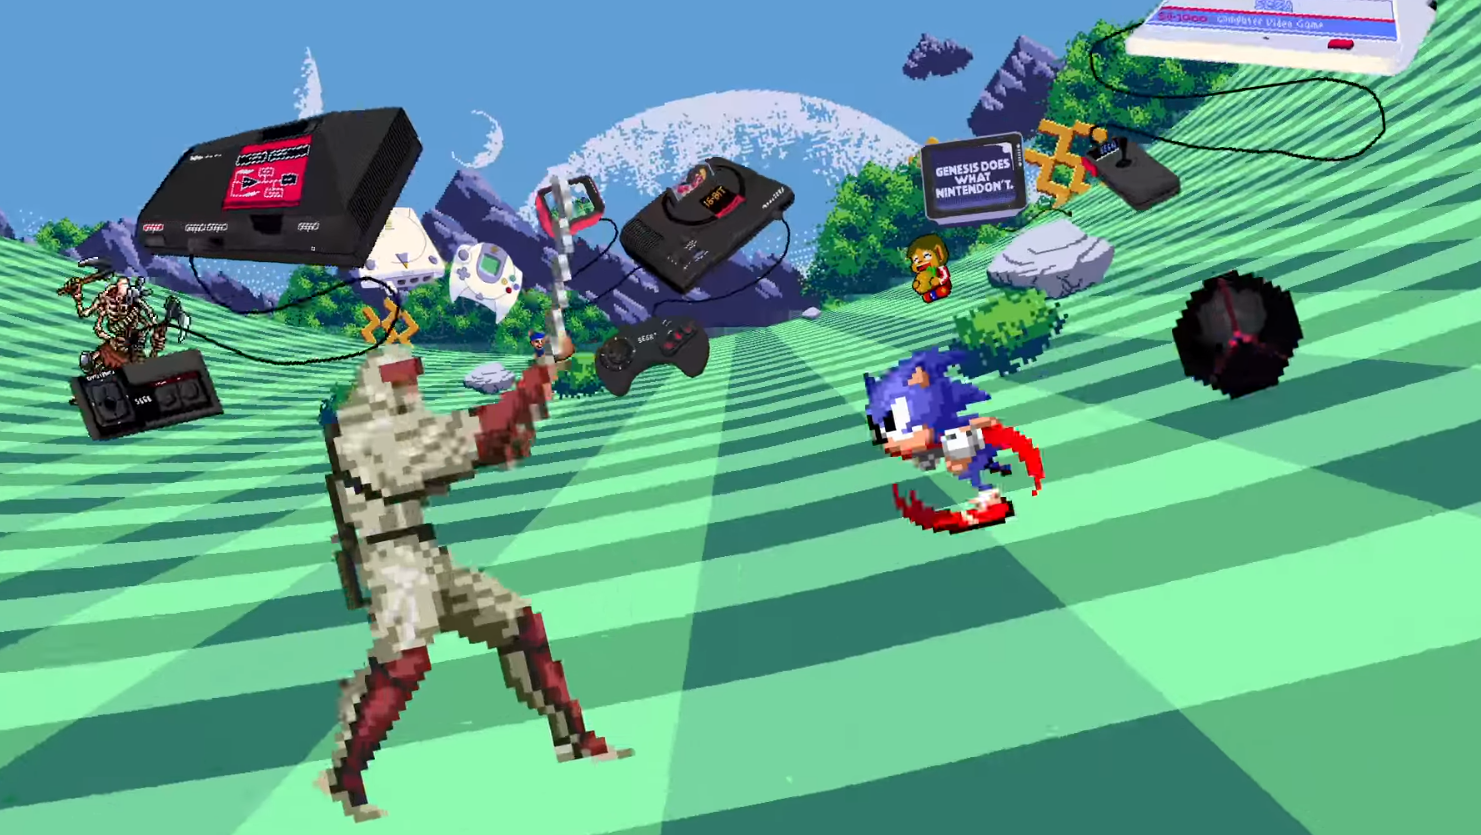 Sega Forever is an exciting idea off to a rocky start